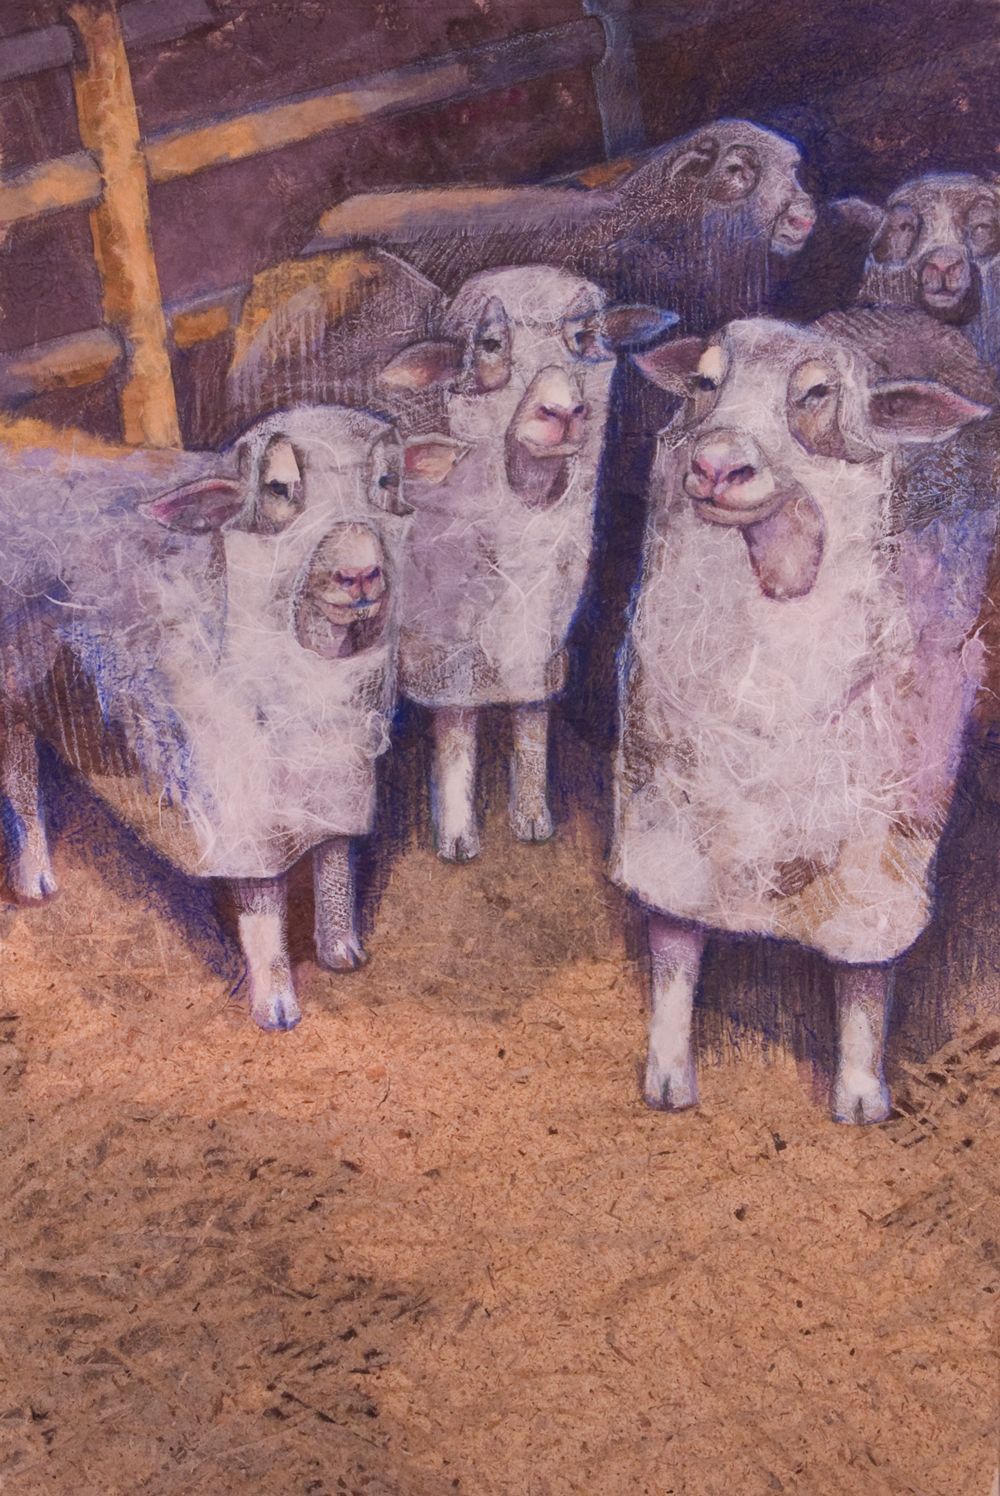 Merely a Herd of Sheep?